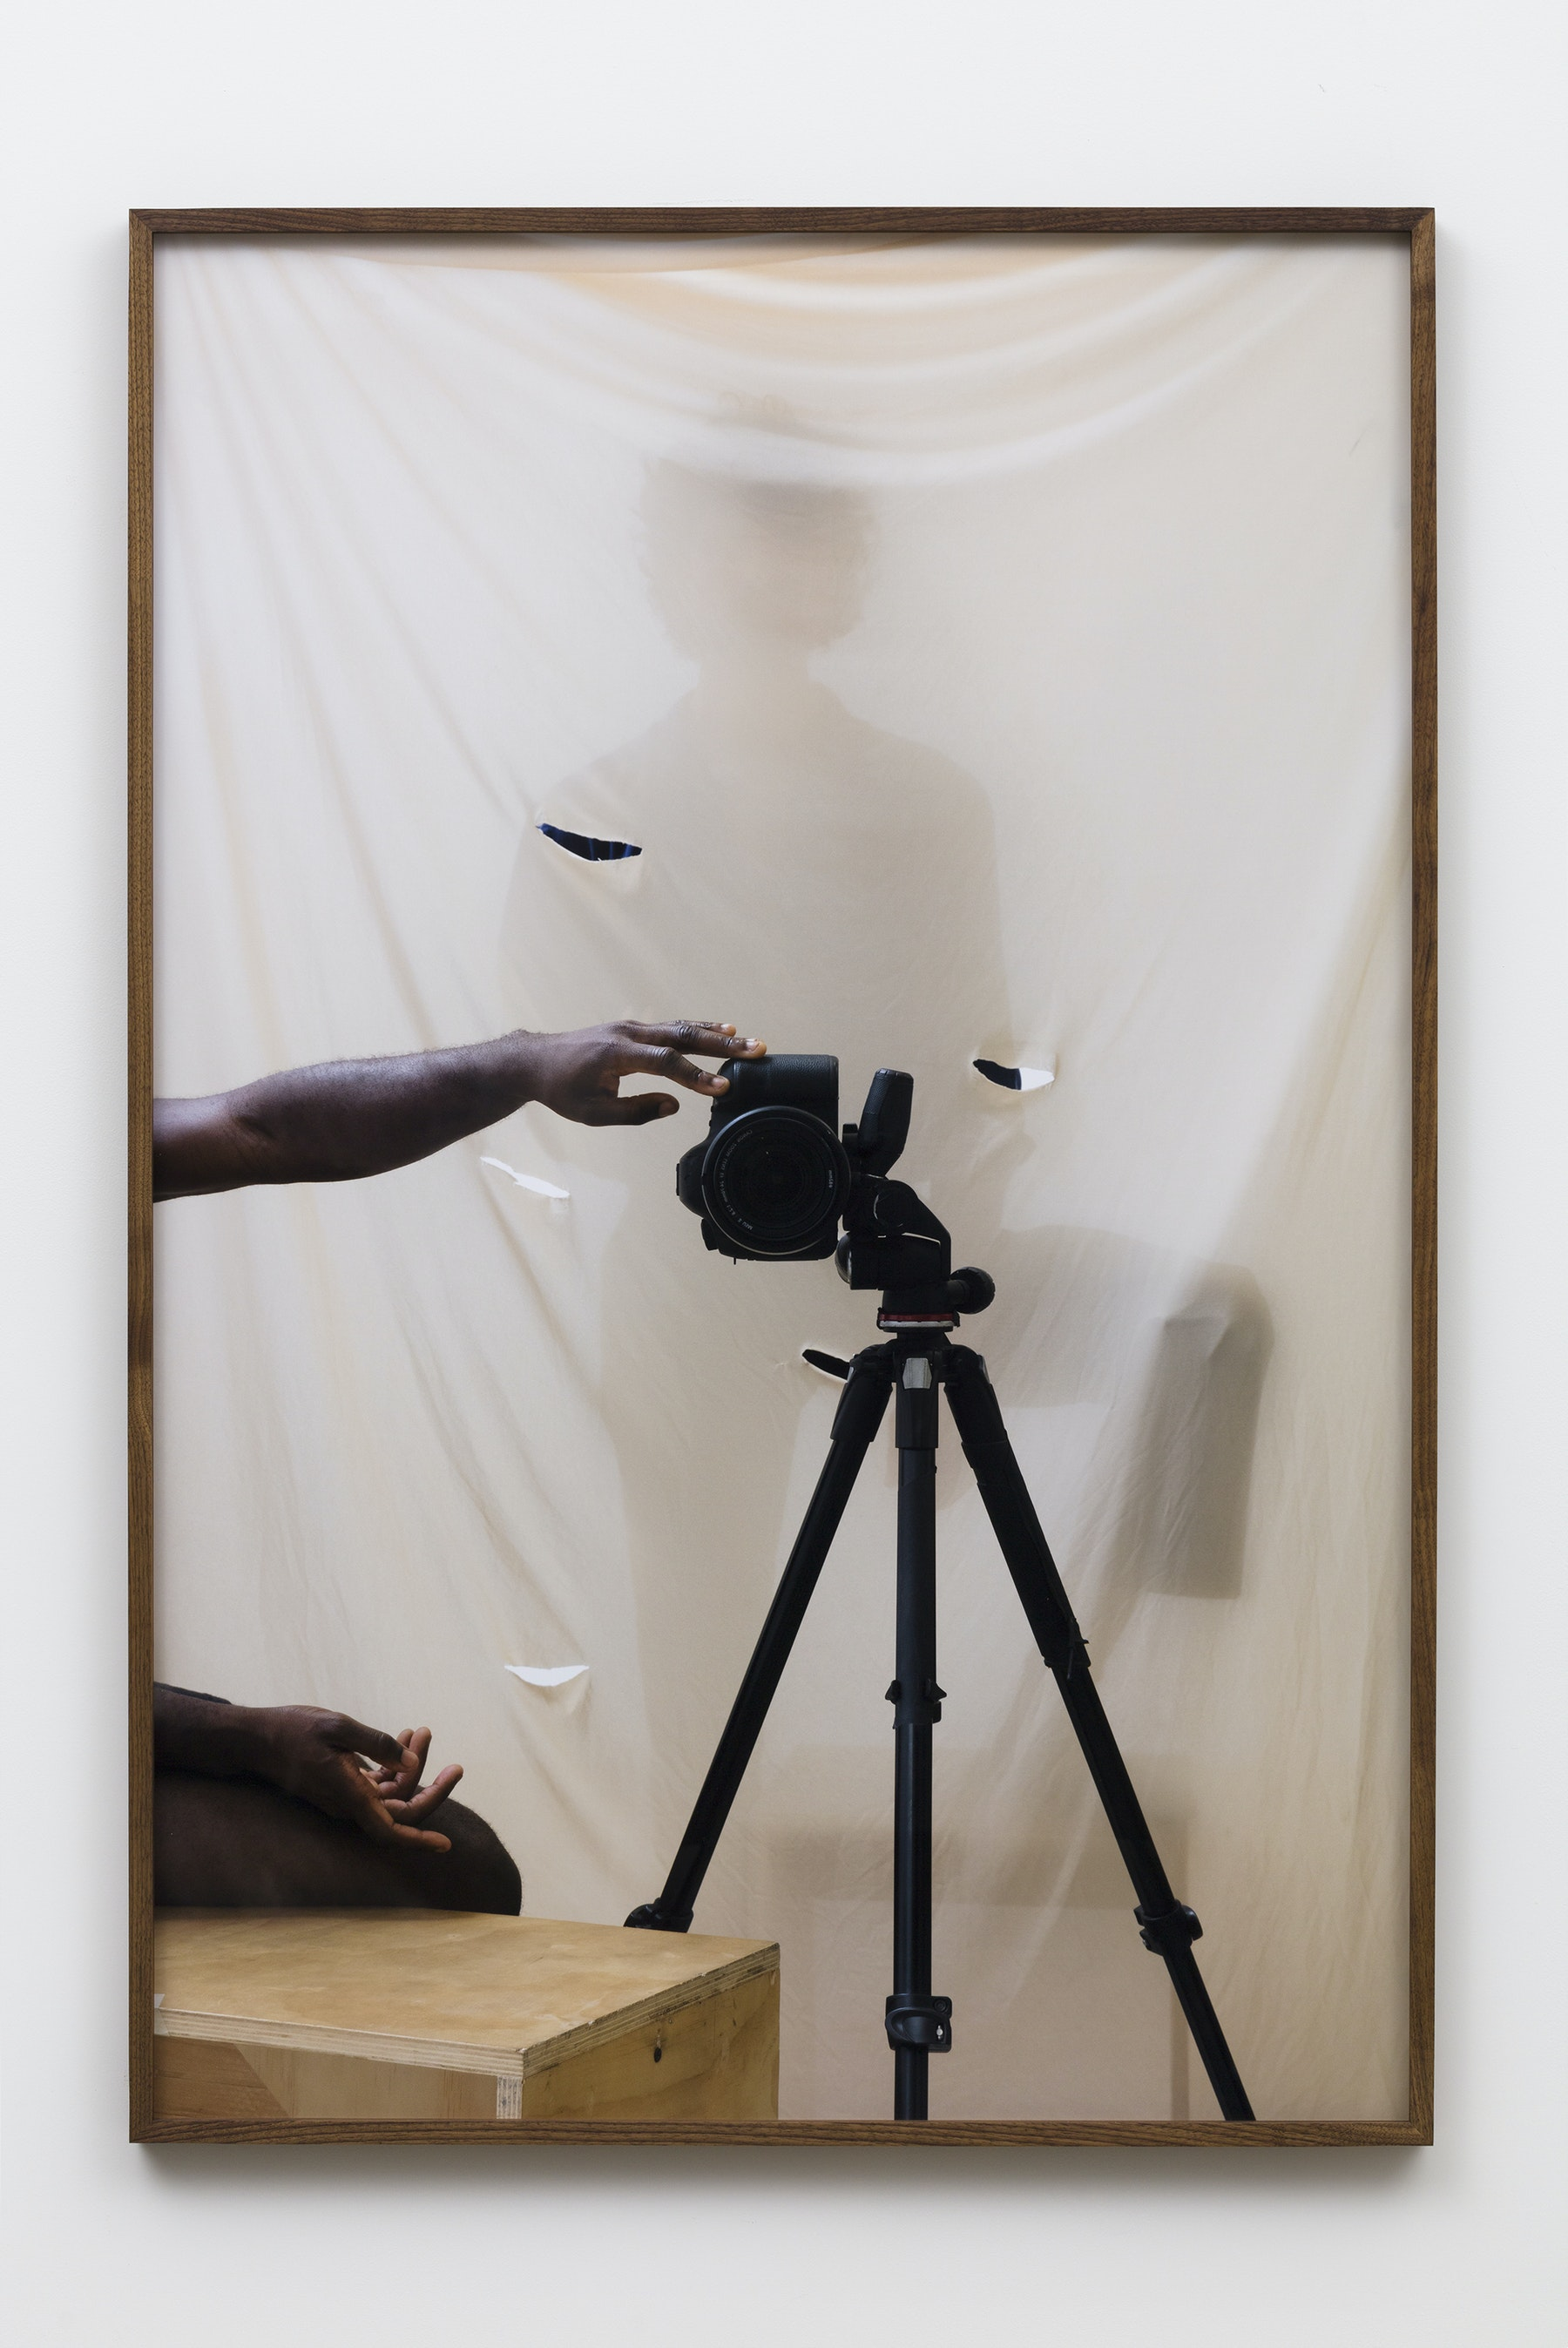 """Paul Mpagi Sepuya """"Screen (0X5A8295),"""" 2019 Archival pigment print 60 x 40"""" [HxW] (152.4 x 101.6 cm) Edition of 5, 2 AP Inventory #SEP654 Courtesy of the artist and Vielmetter Los Angeles Photo credit: Jeff McLane"""